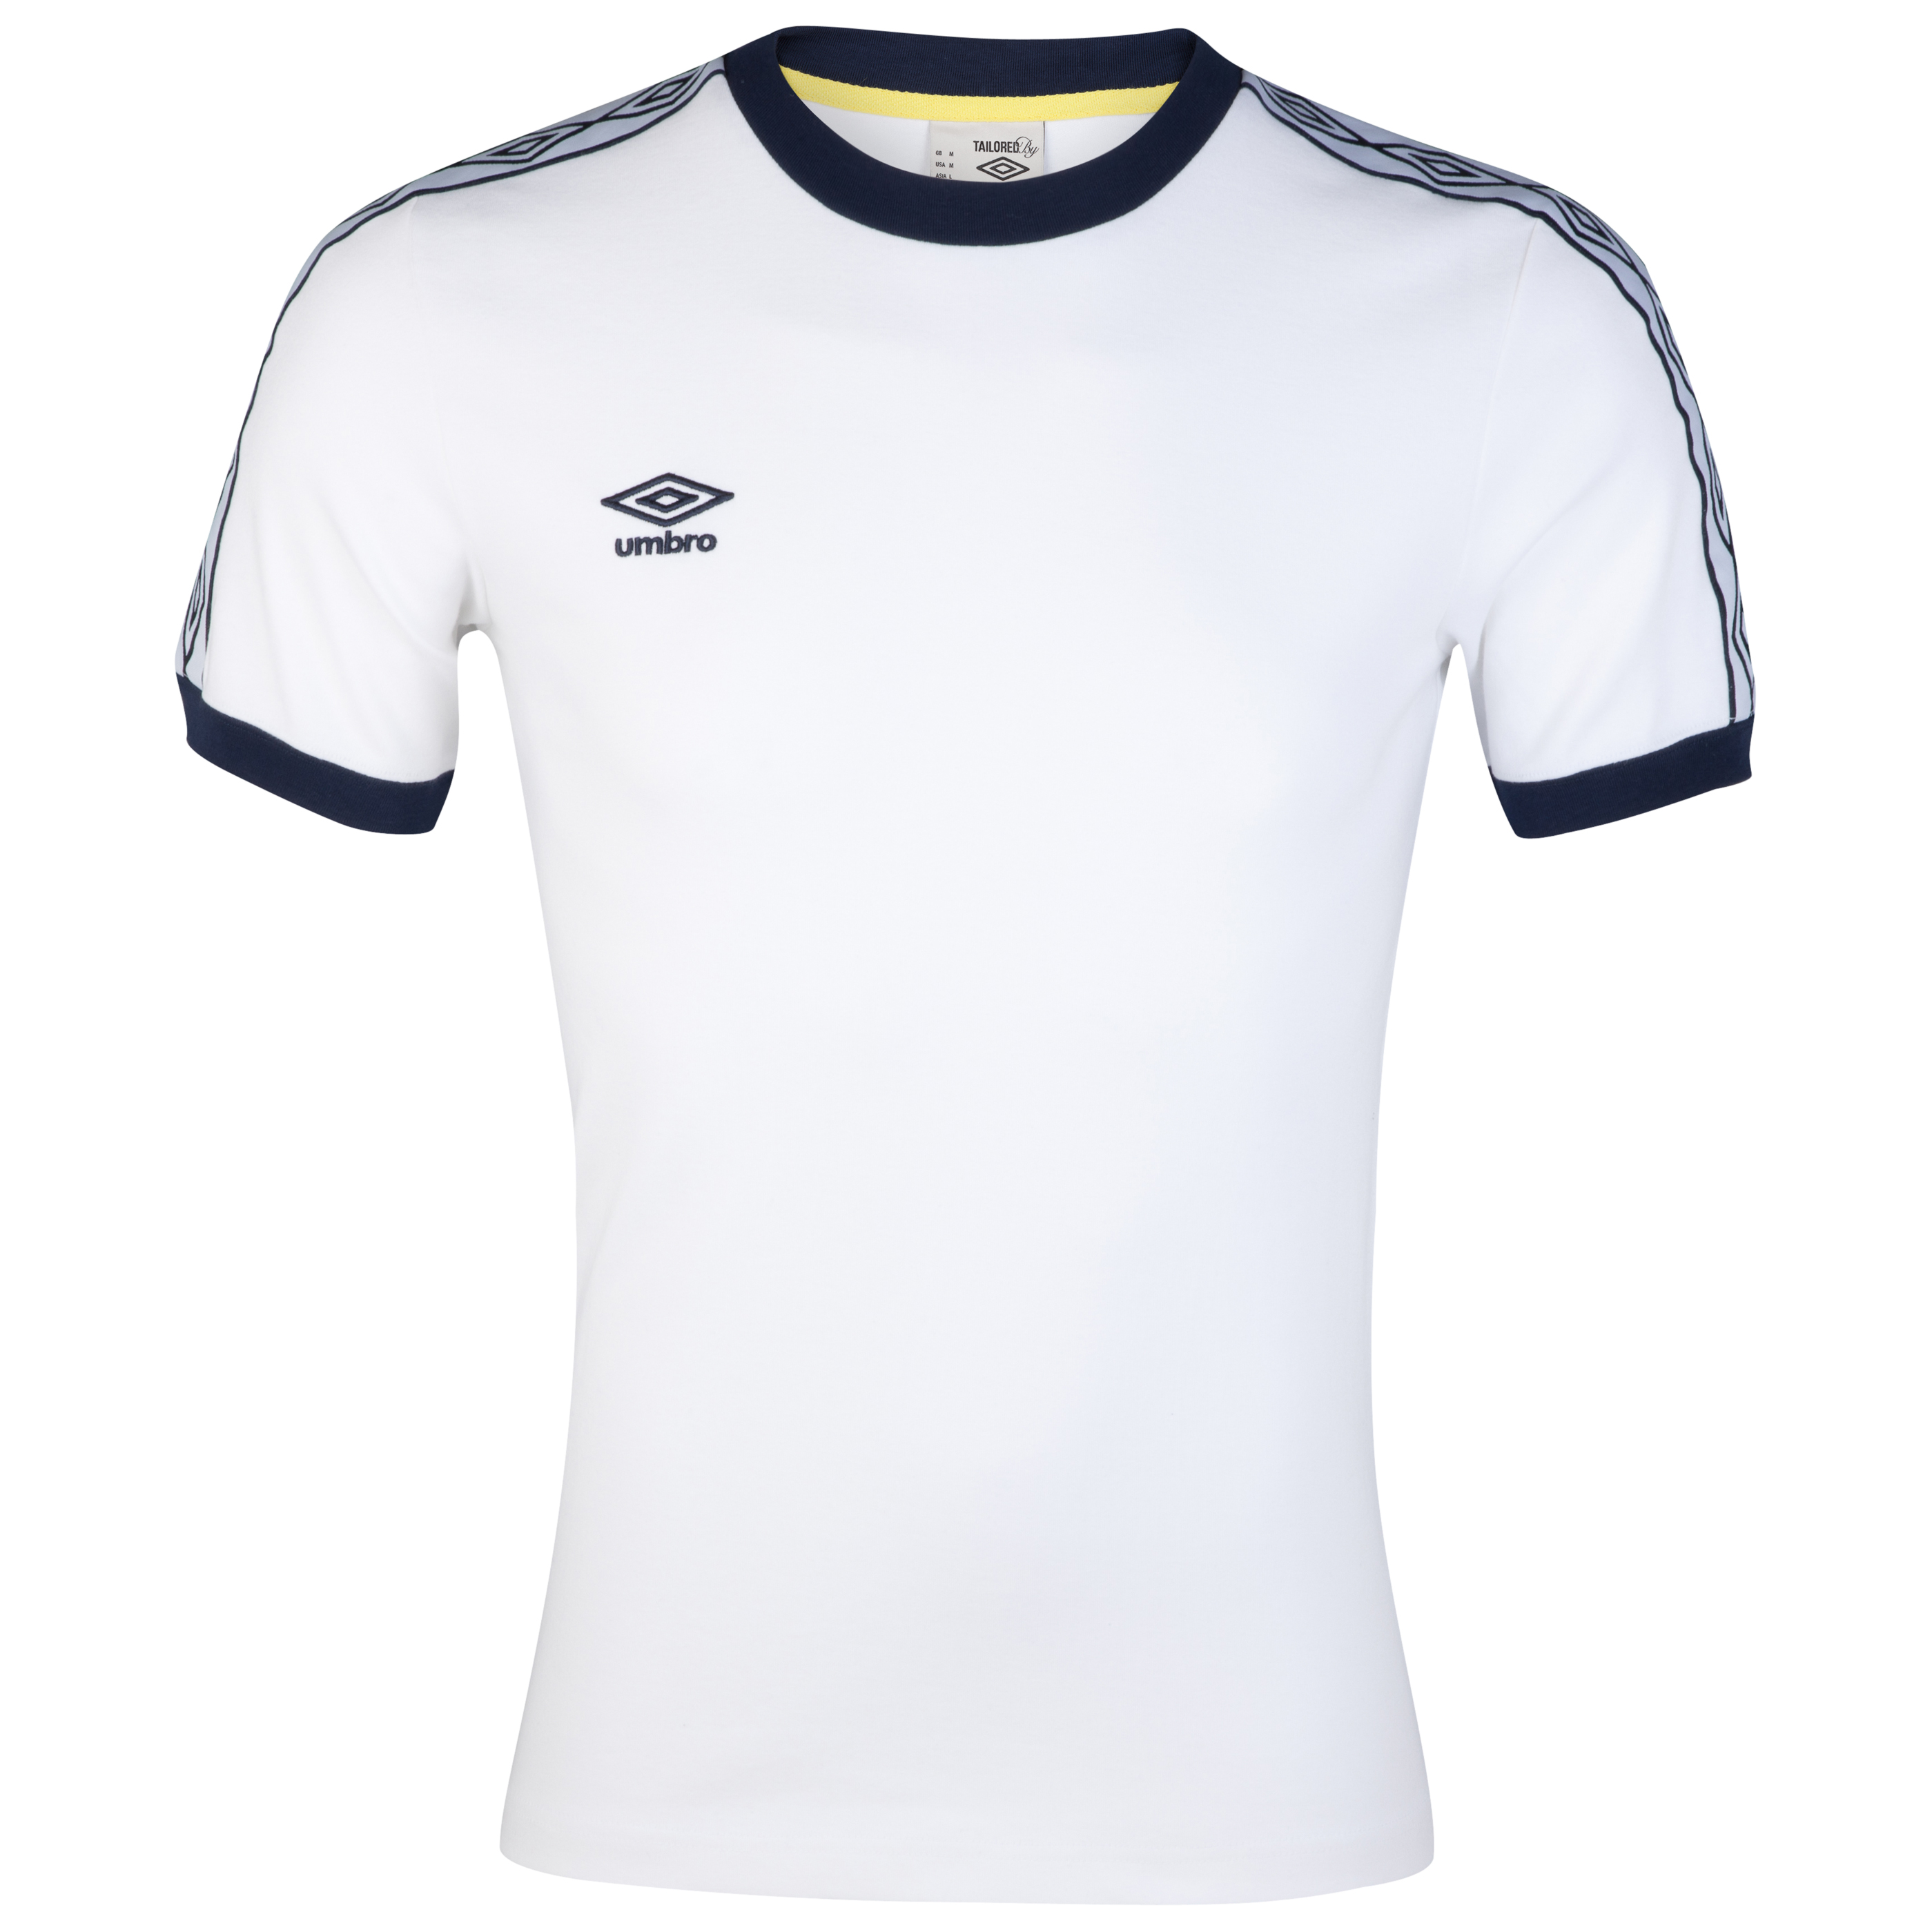 Umbro Heritage Ringer T-Shirt - White/Dark Navy